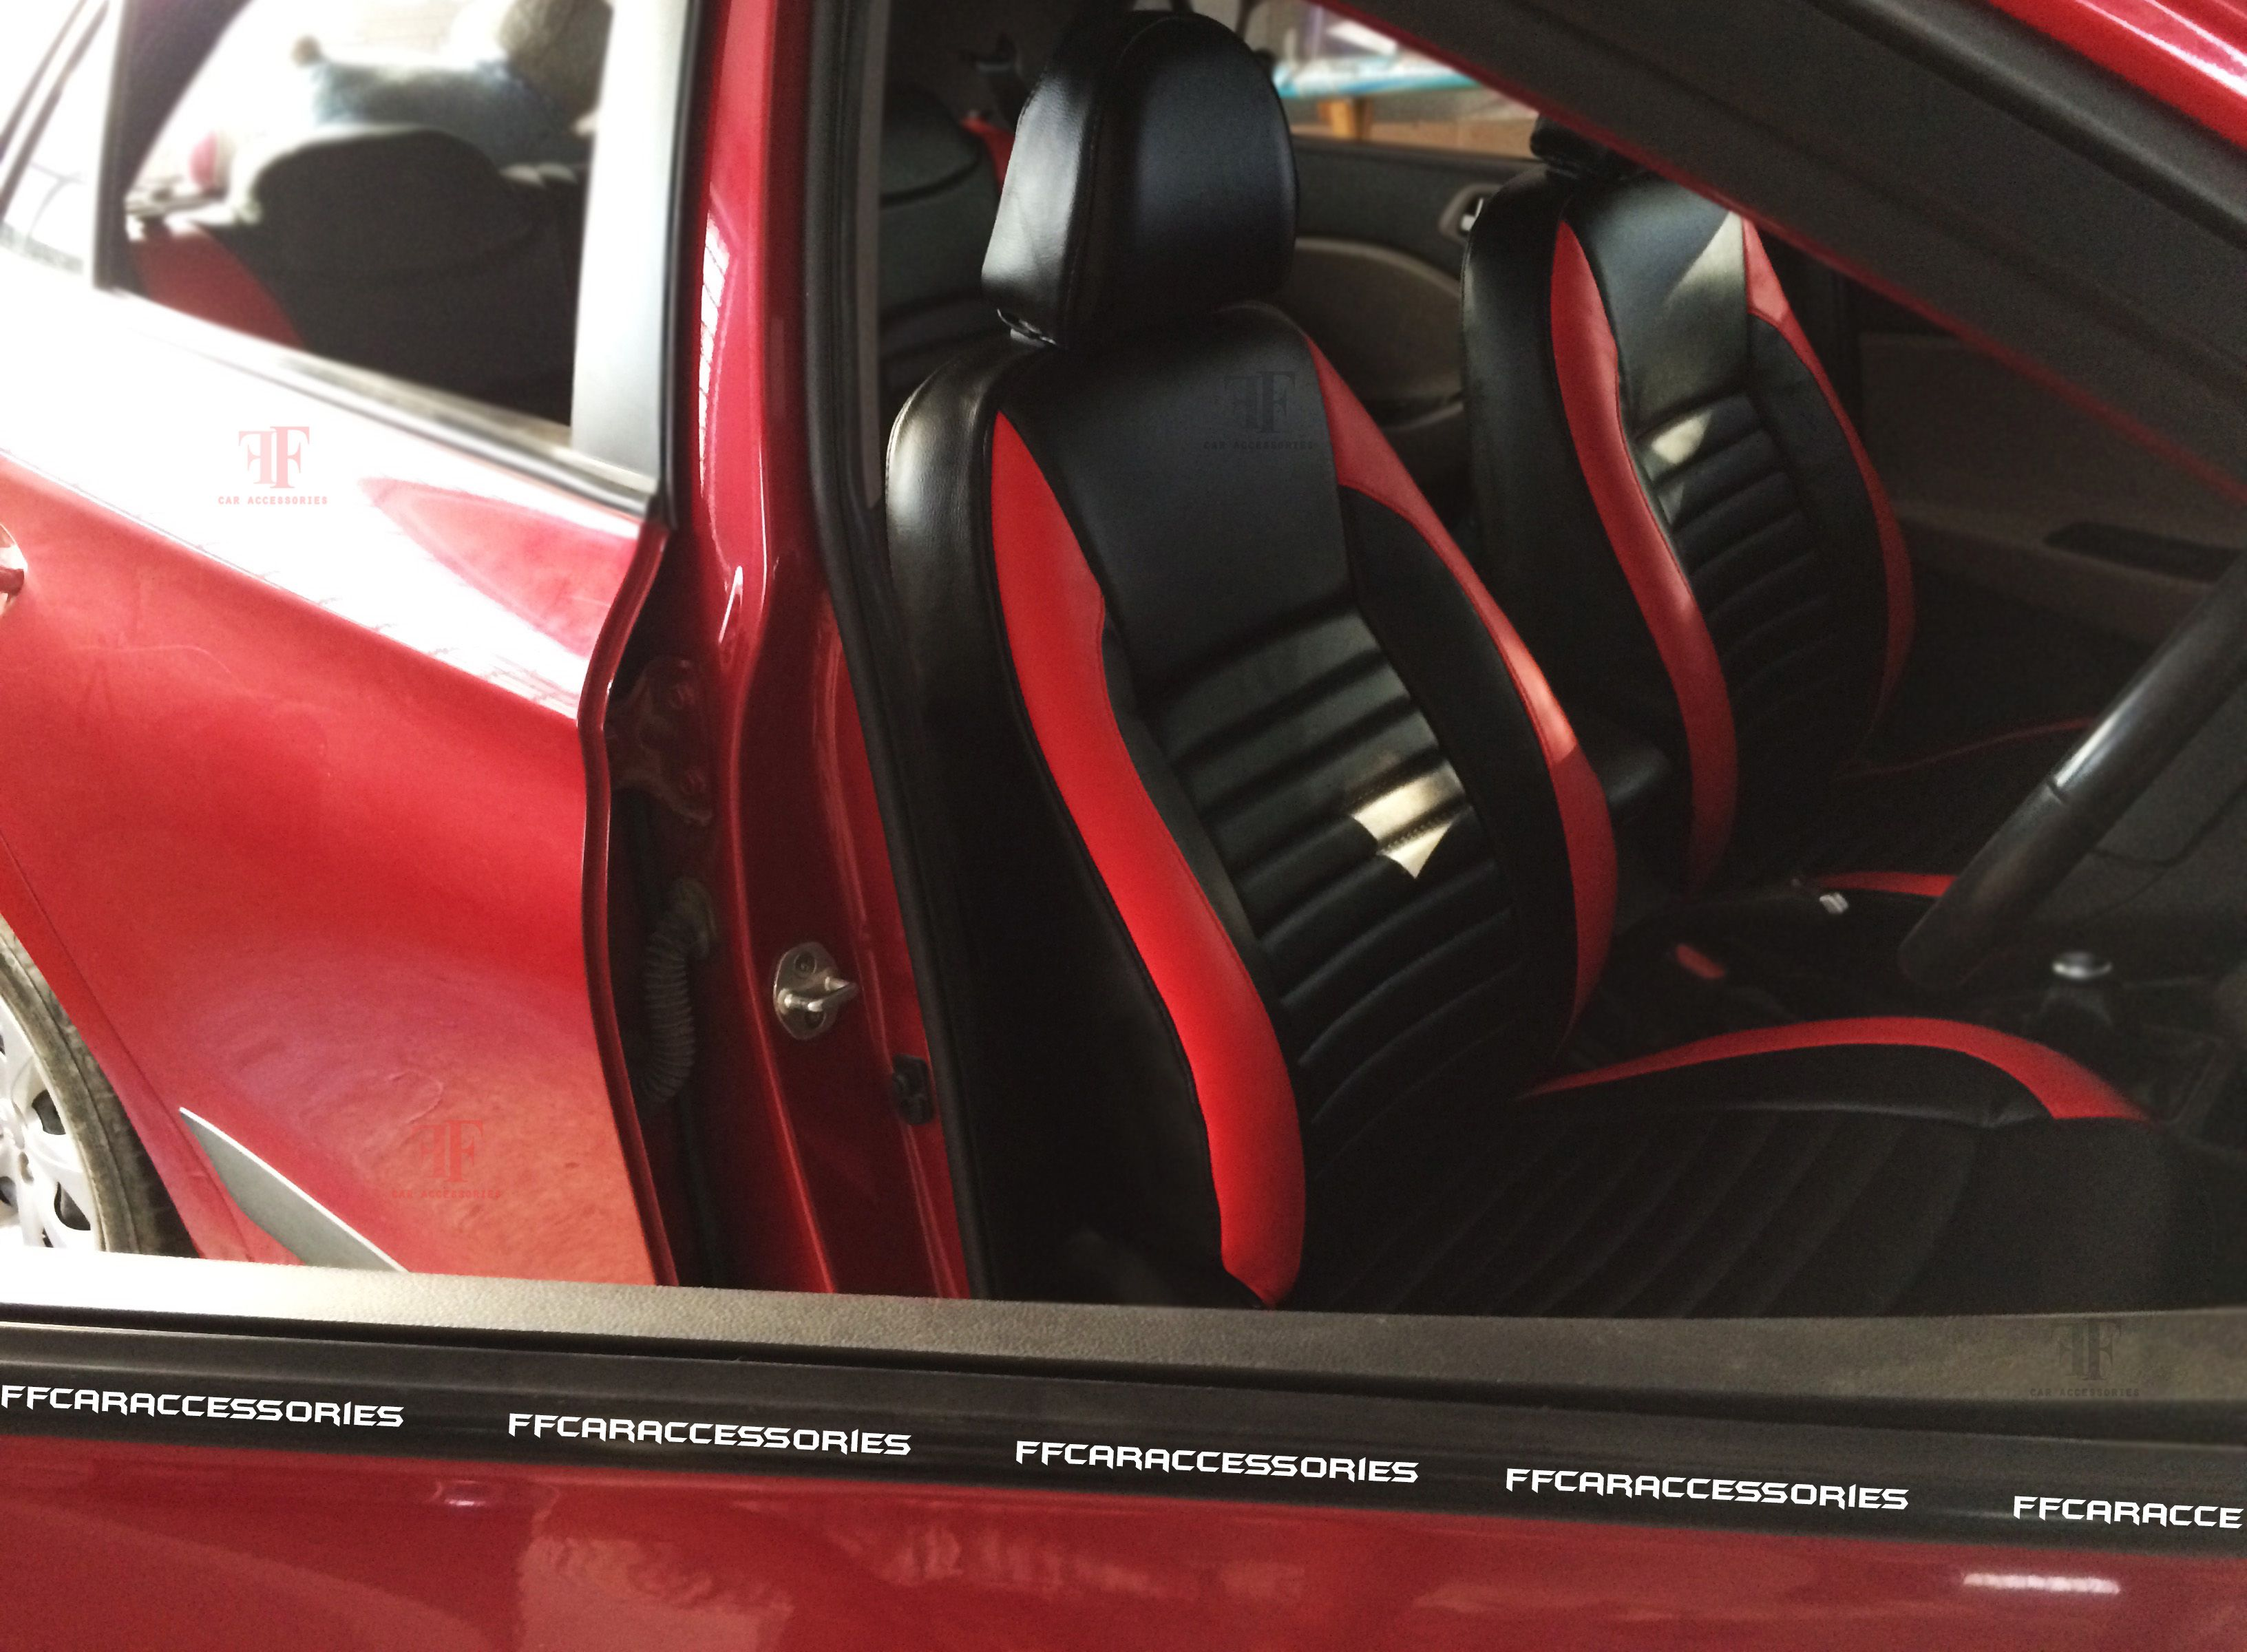 Red Black Combination Of Hyundai I Customised Seat Cover - Sporty auto